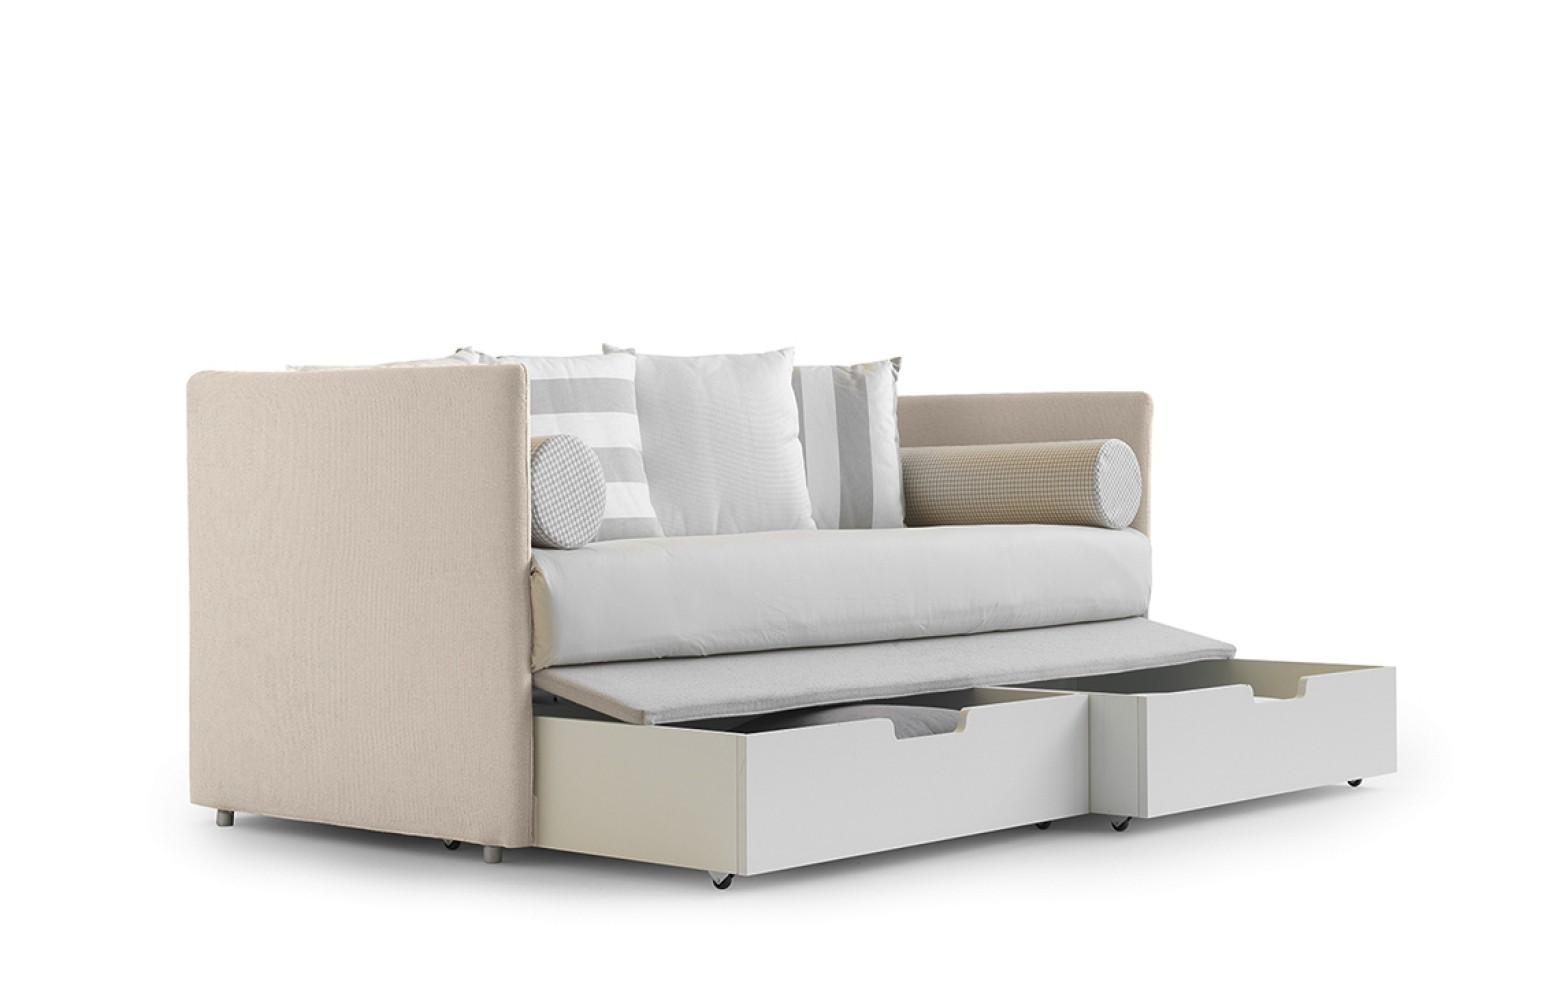 Space Bettsofa Betten Online Outlet Whos Perfect